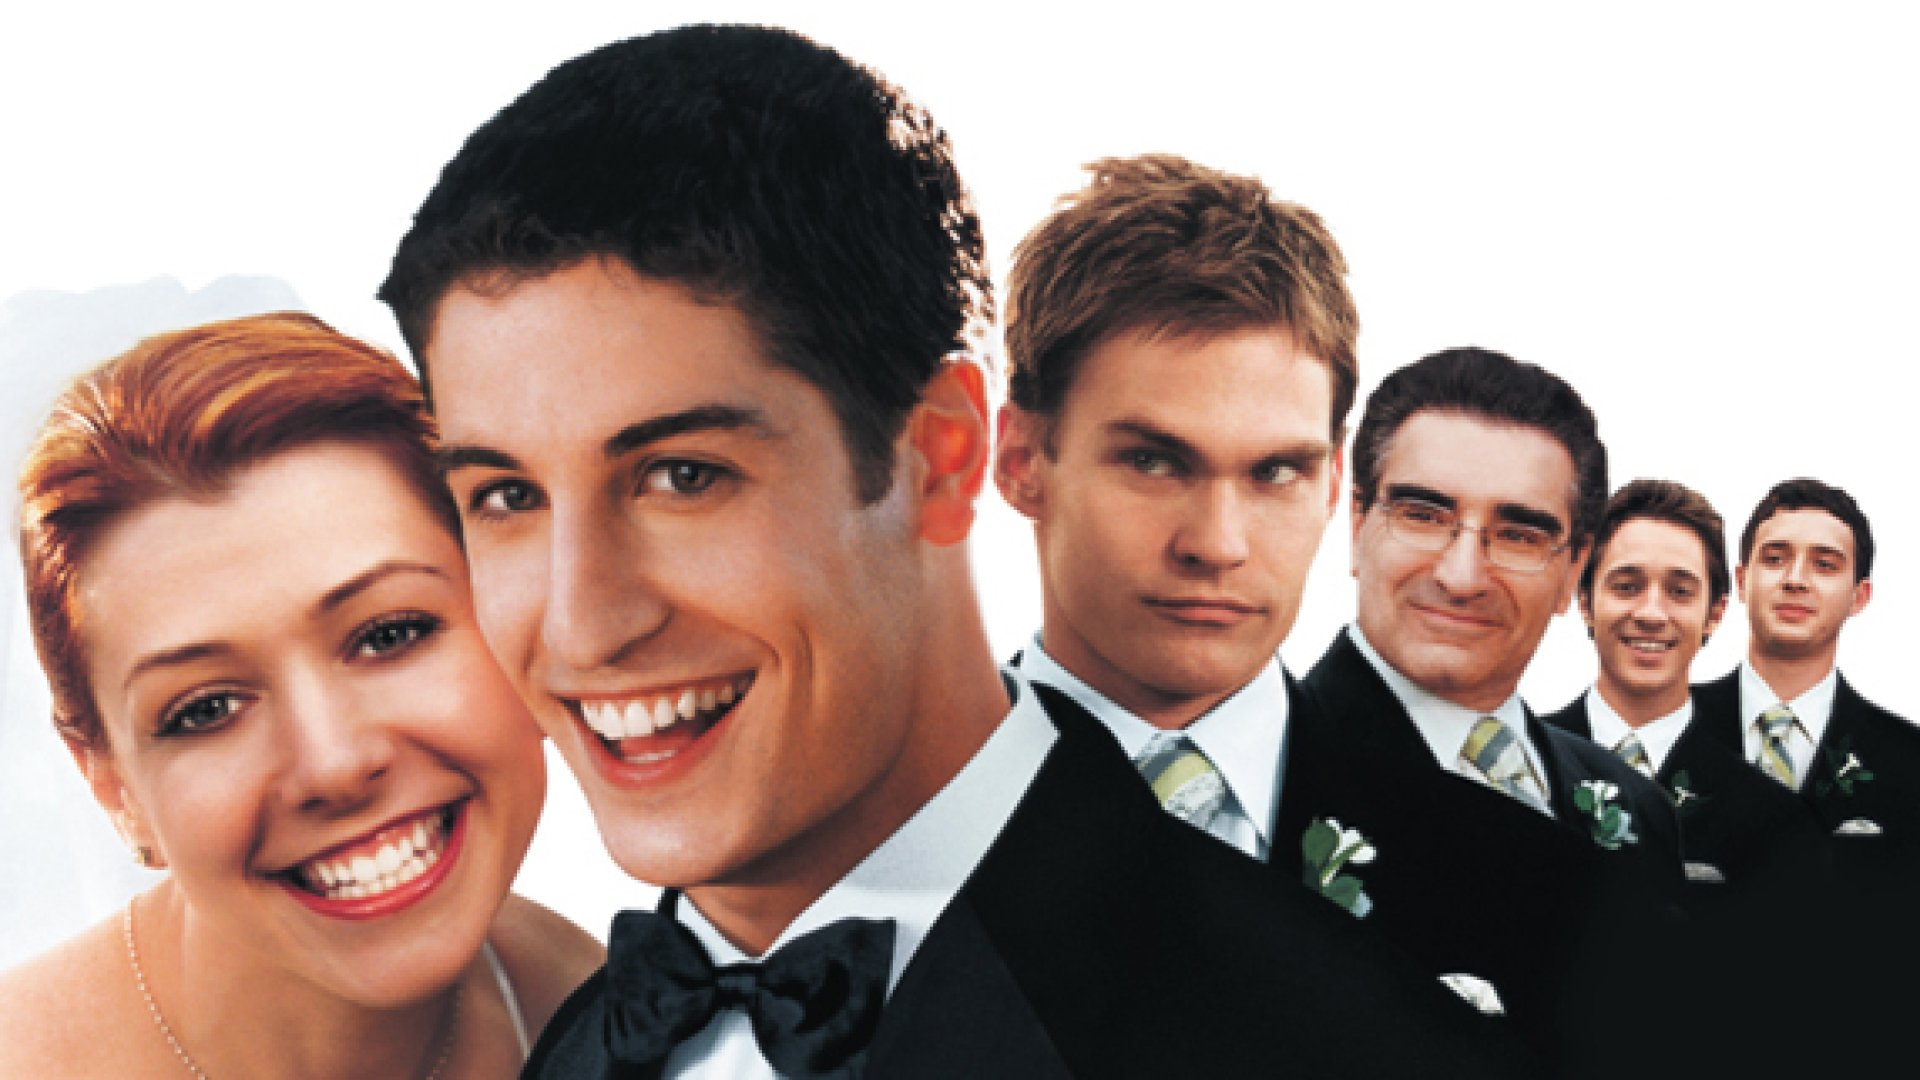 American Pie The Next Generation american pie stars jason biggs and shannon elizabeth are